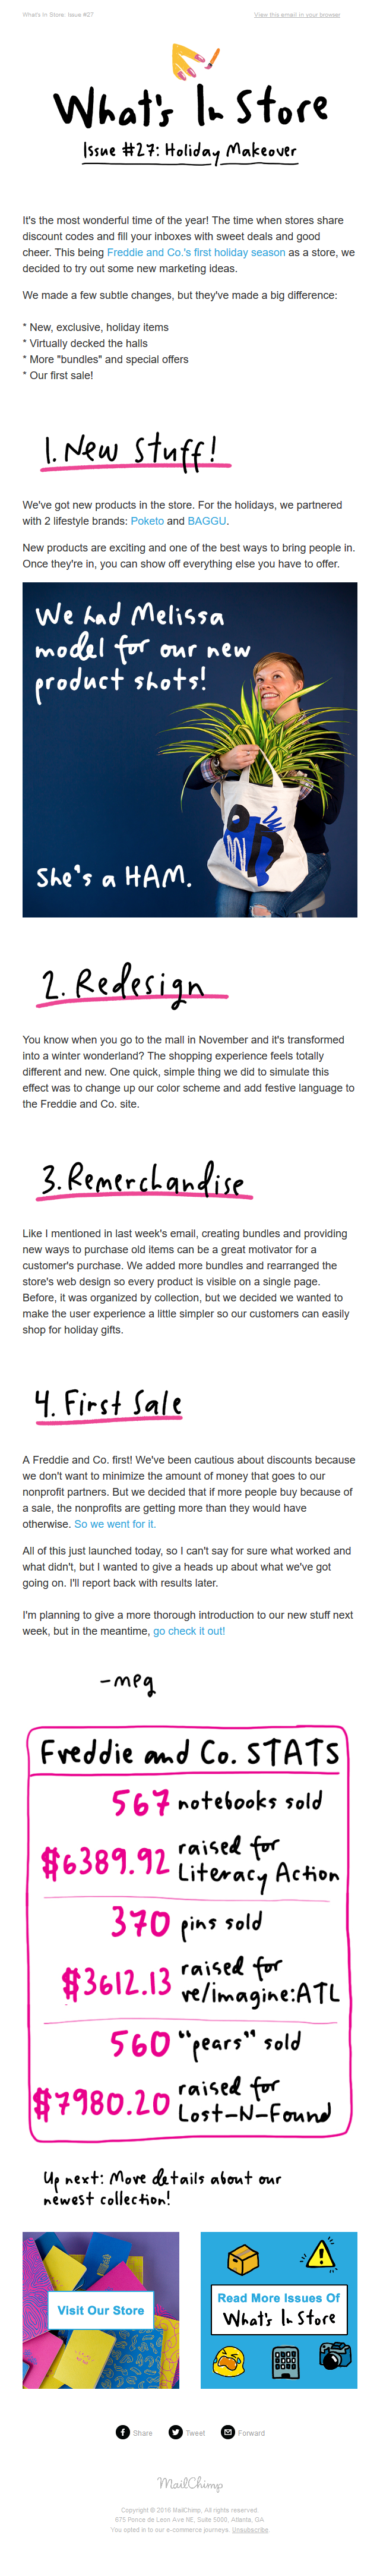 MailChimp: What's in Store - Issue #27: Giving the store a festive makeover!